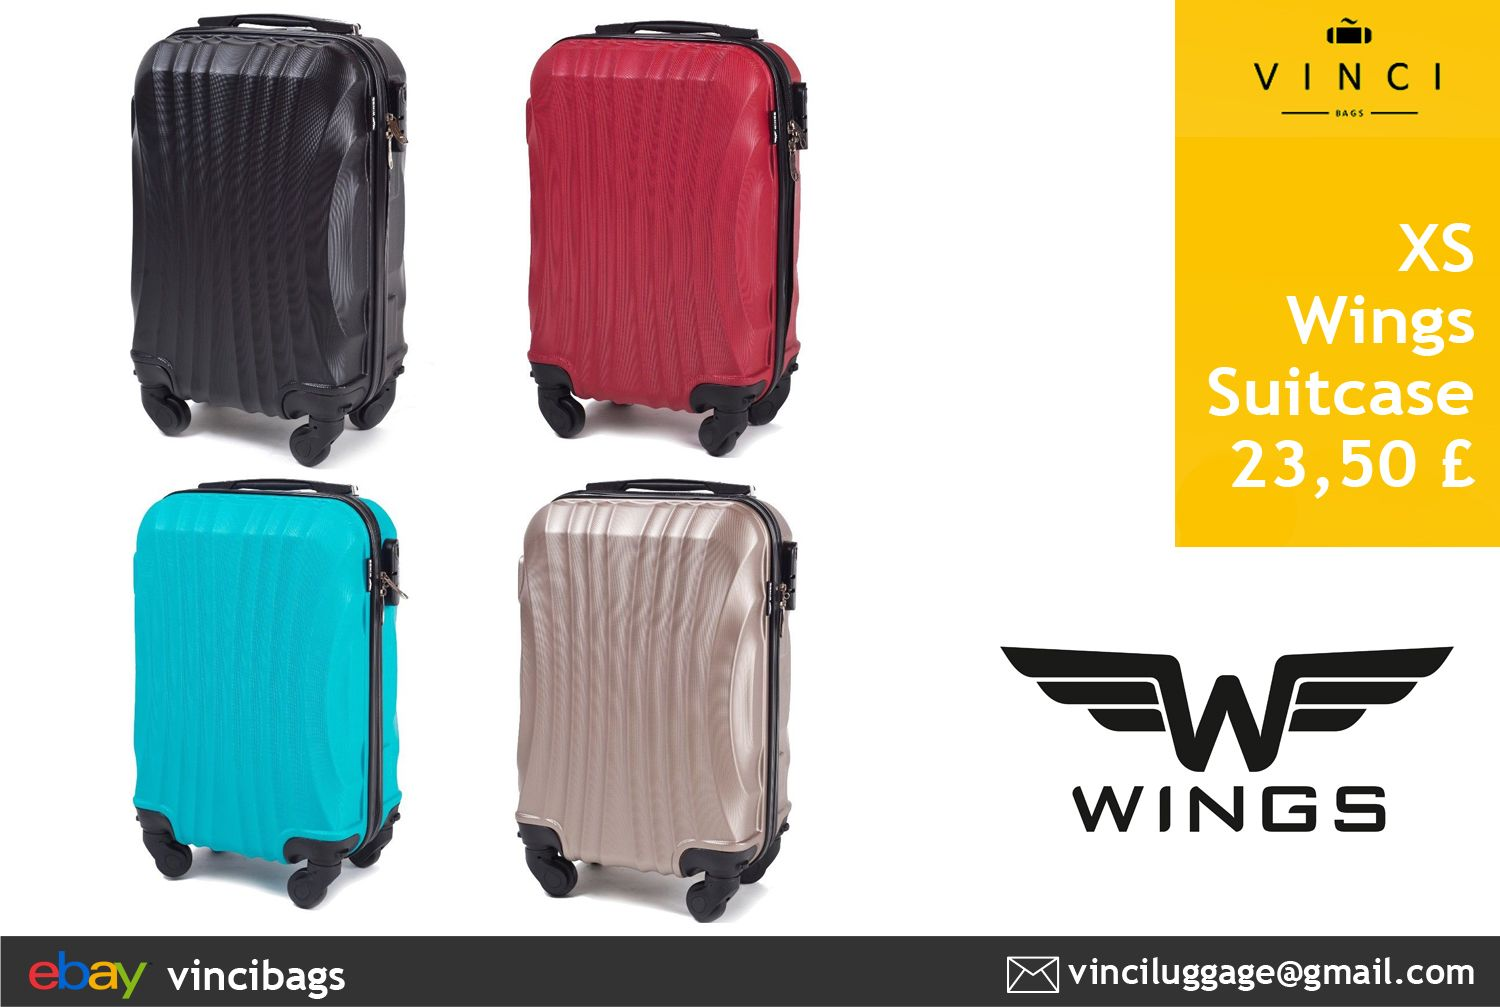 Traveling With Wizzair Or Ryanair We Have Great Lightweight Suitcases Suitable For Cabin Luggage Products Of Wing Suitcase Lightweight Suitcase Cabin Luggage